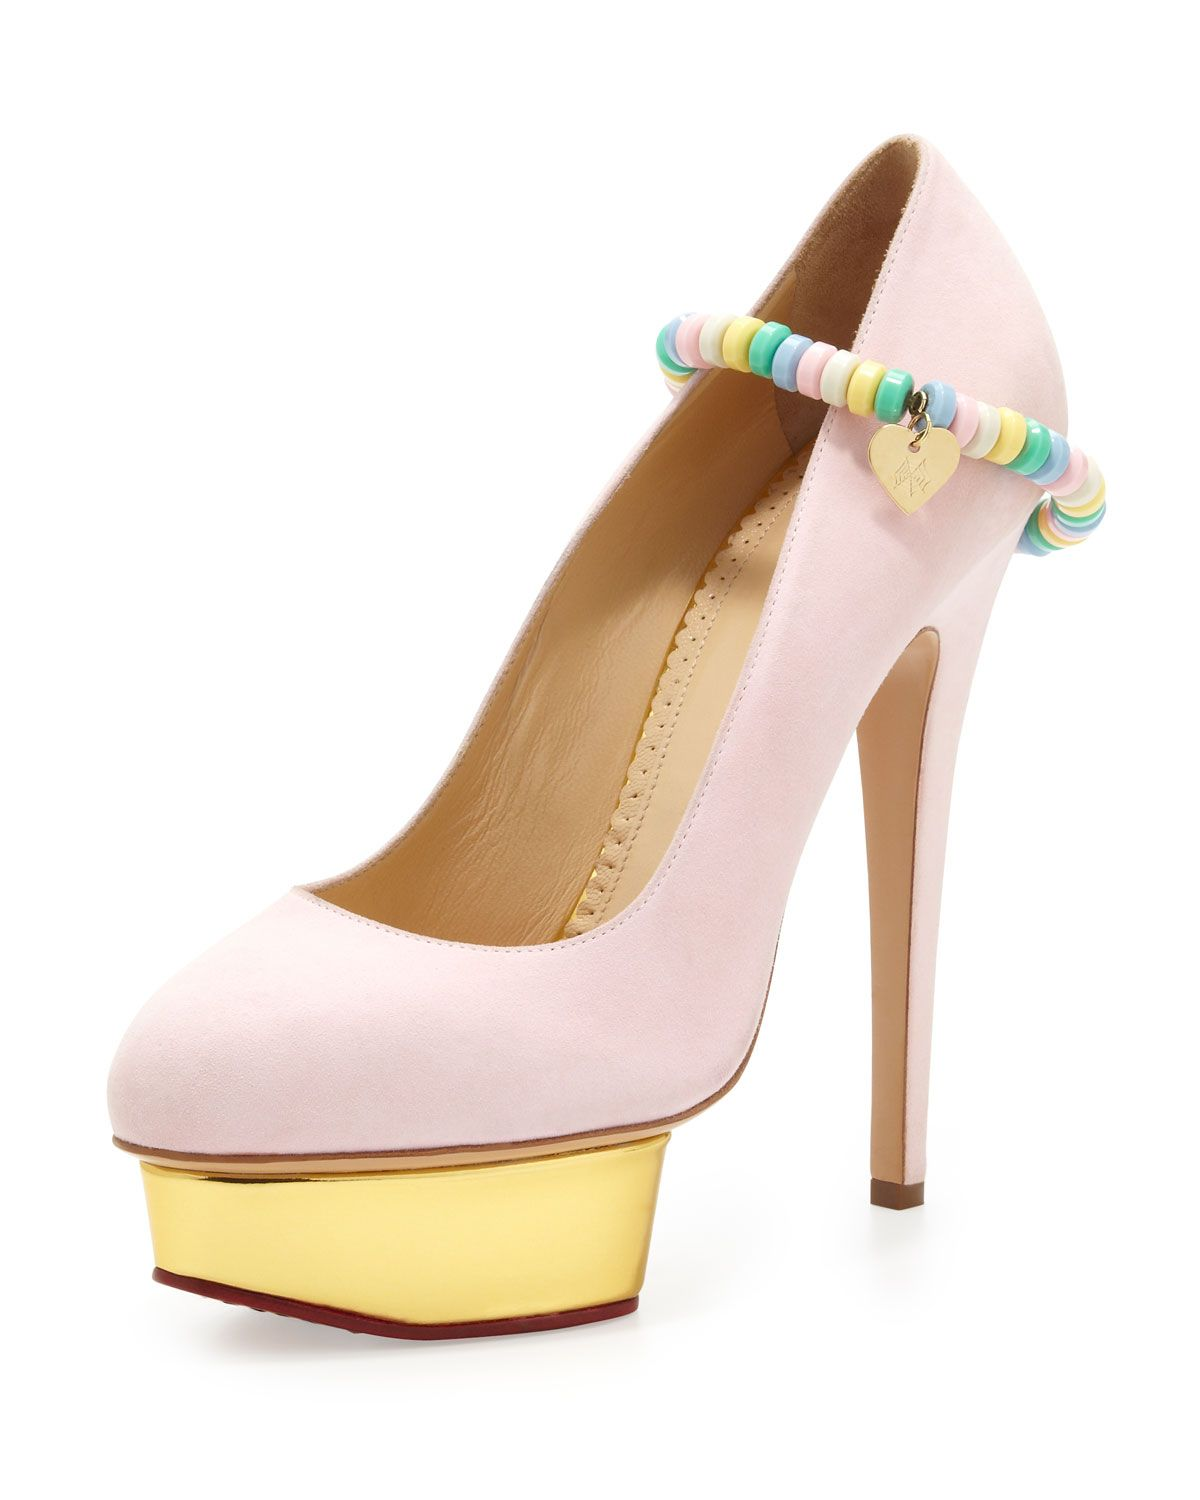 8a9b0f30cef Charlotte Olympia Sweet Dolly Pump with Candy Anklet in Pink (CANDY FLOSS)